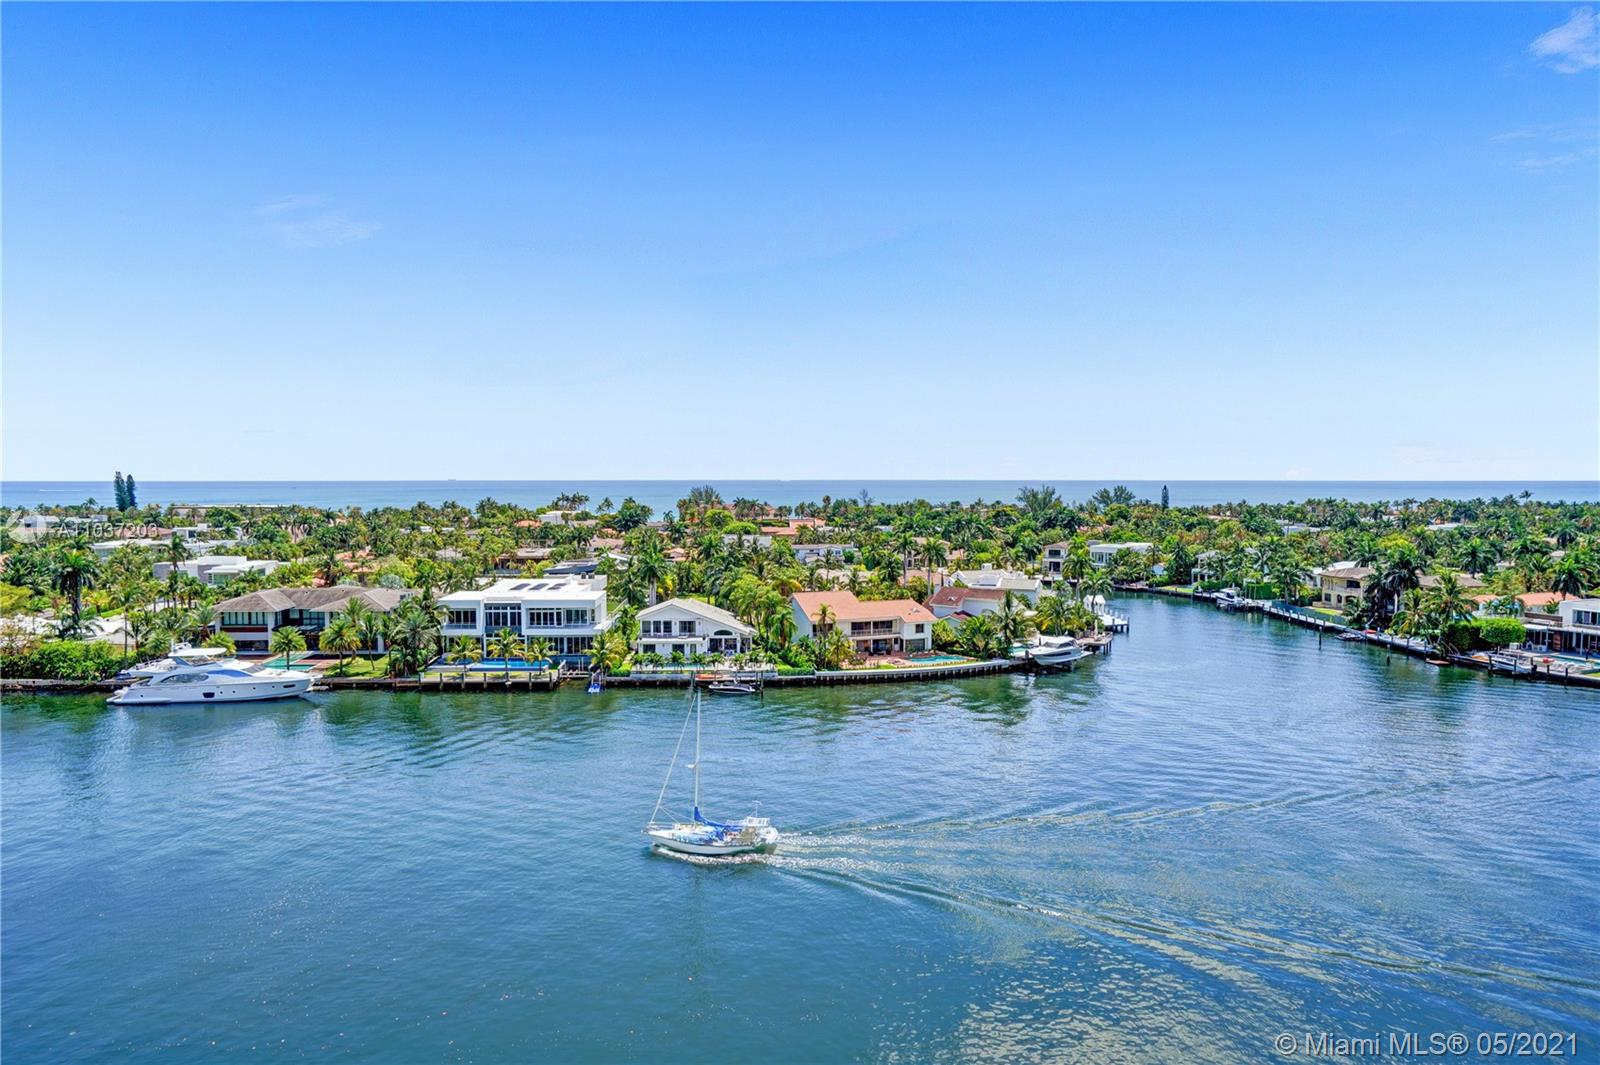 Photo of 20201 Country Club Dr #1006, Aventura, Florida, 33180 - Relaxing water views from the balcony.